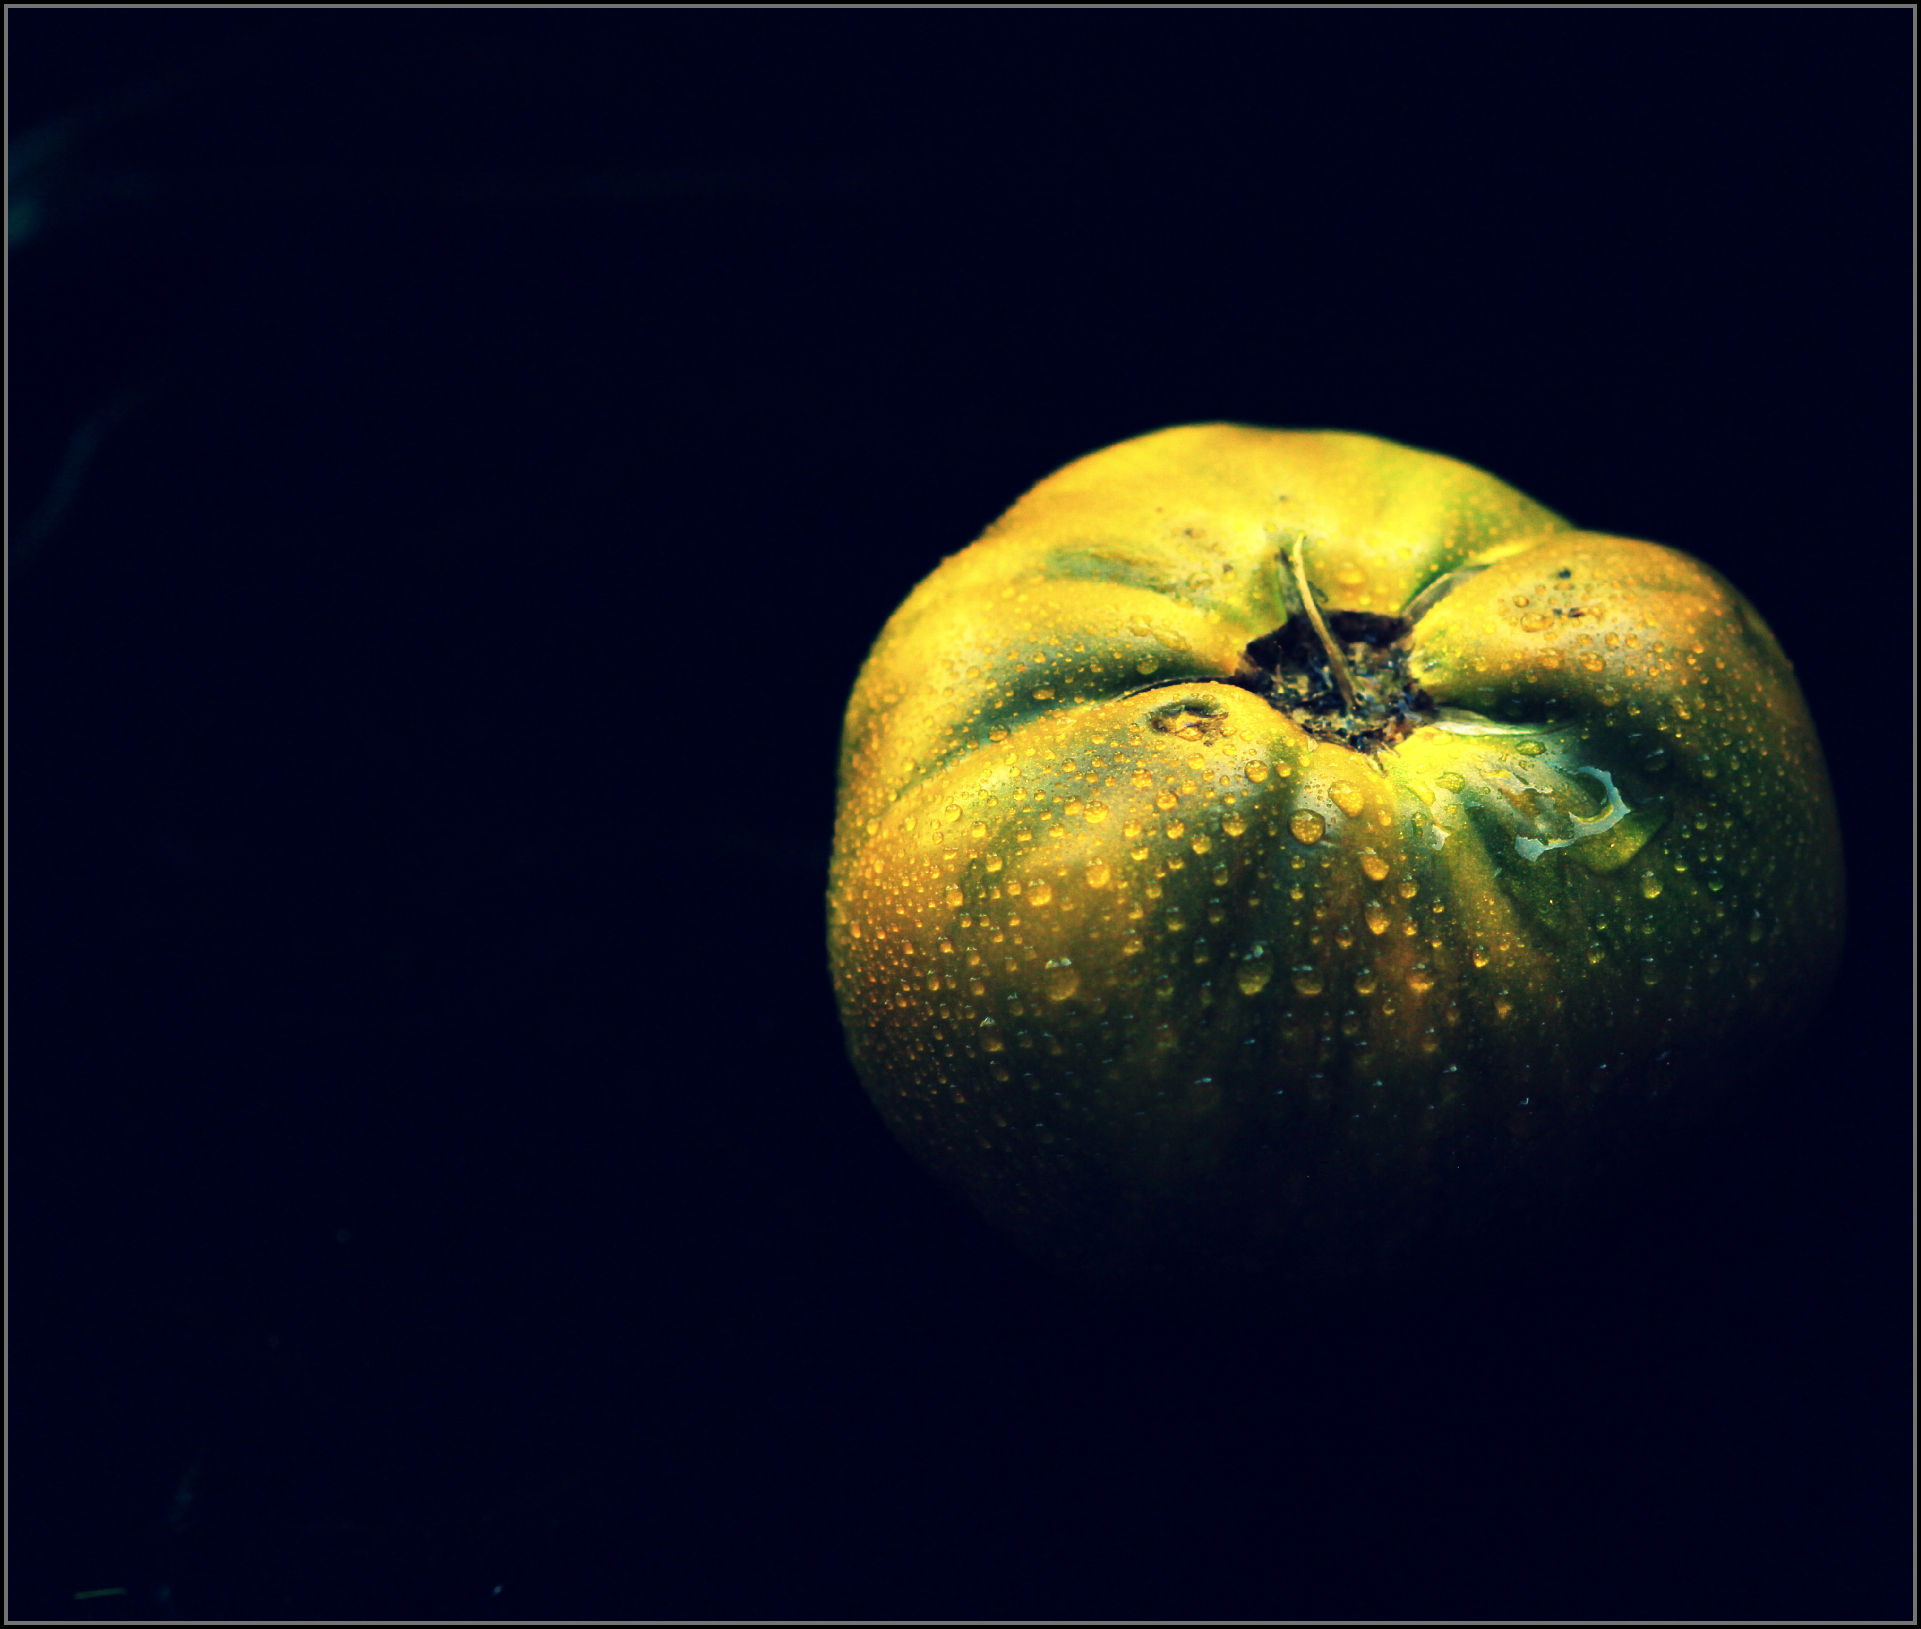 Green Tomato in Darkness by Dena T Bray©